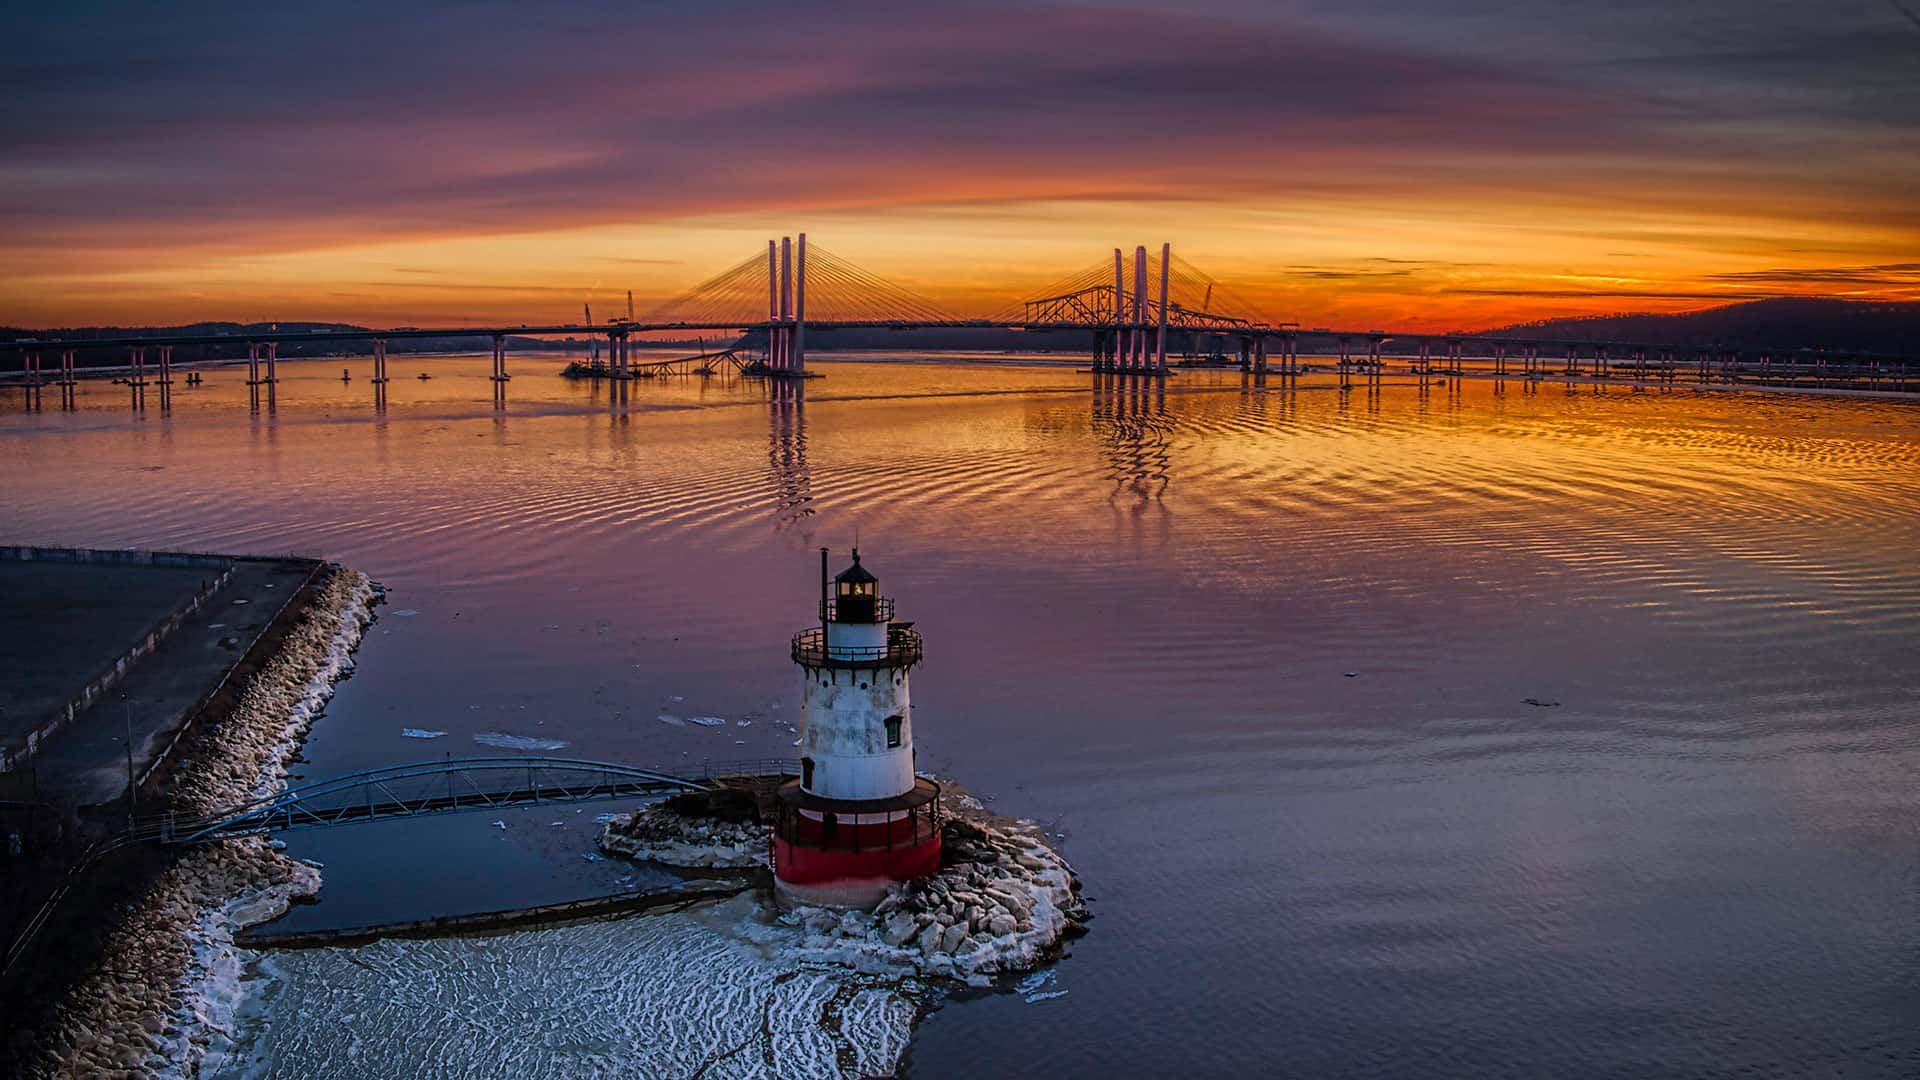 Sunset over the Hudson River and the Tappan Zee Bridge and Lighthouse